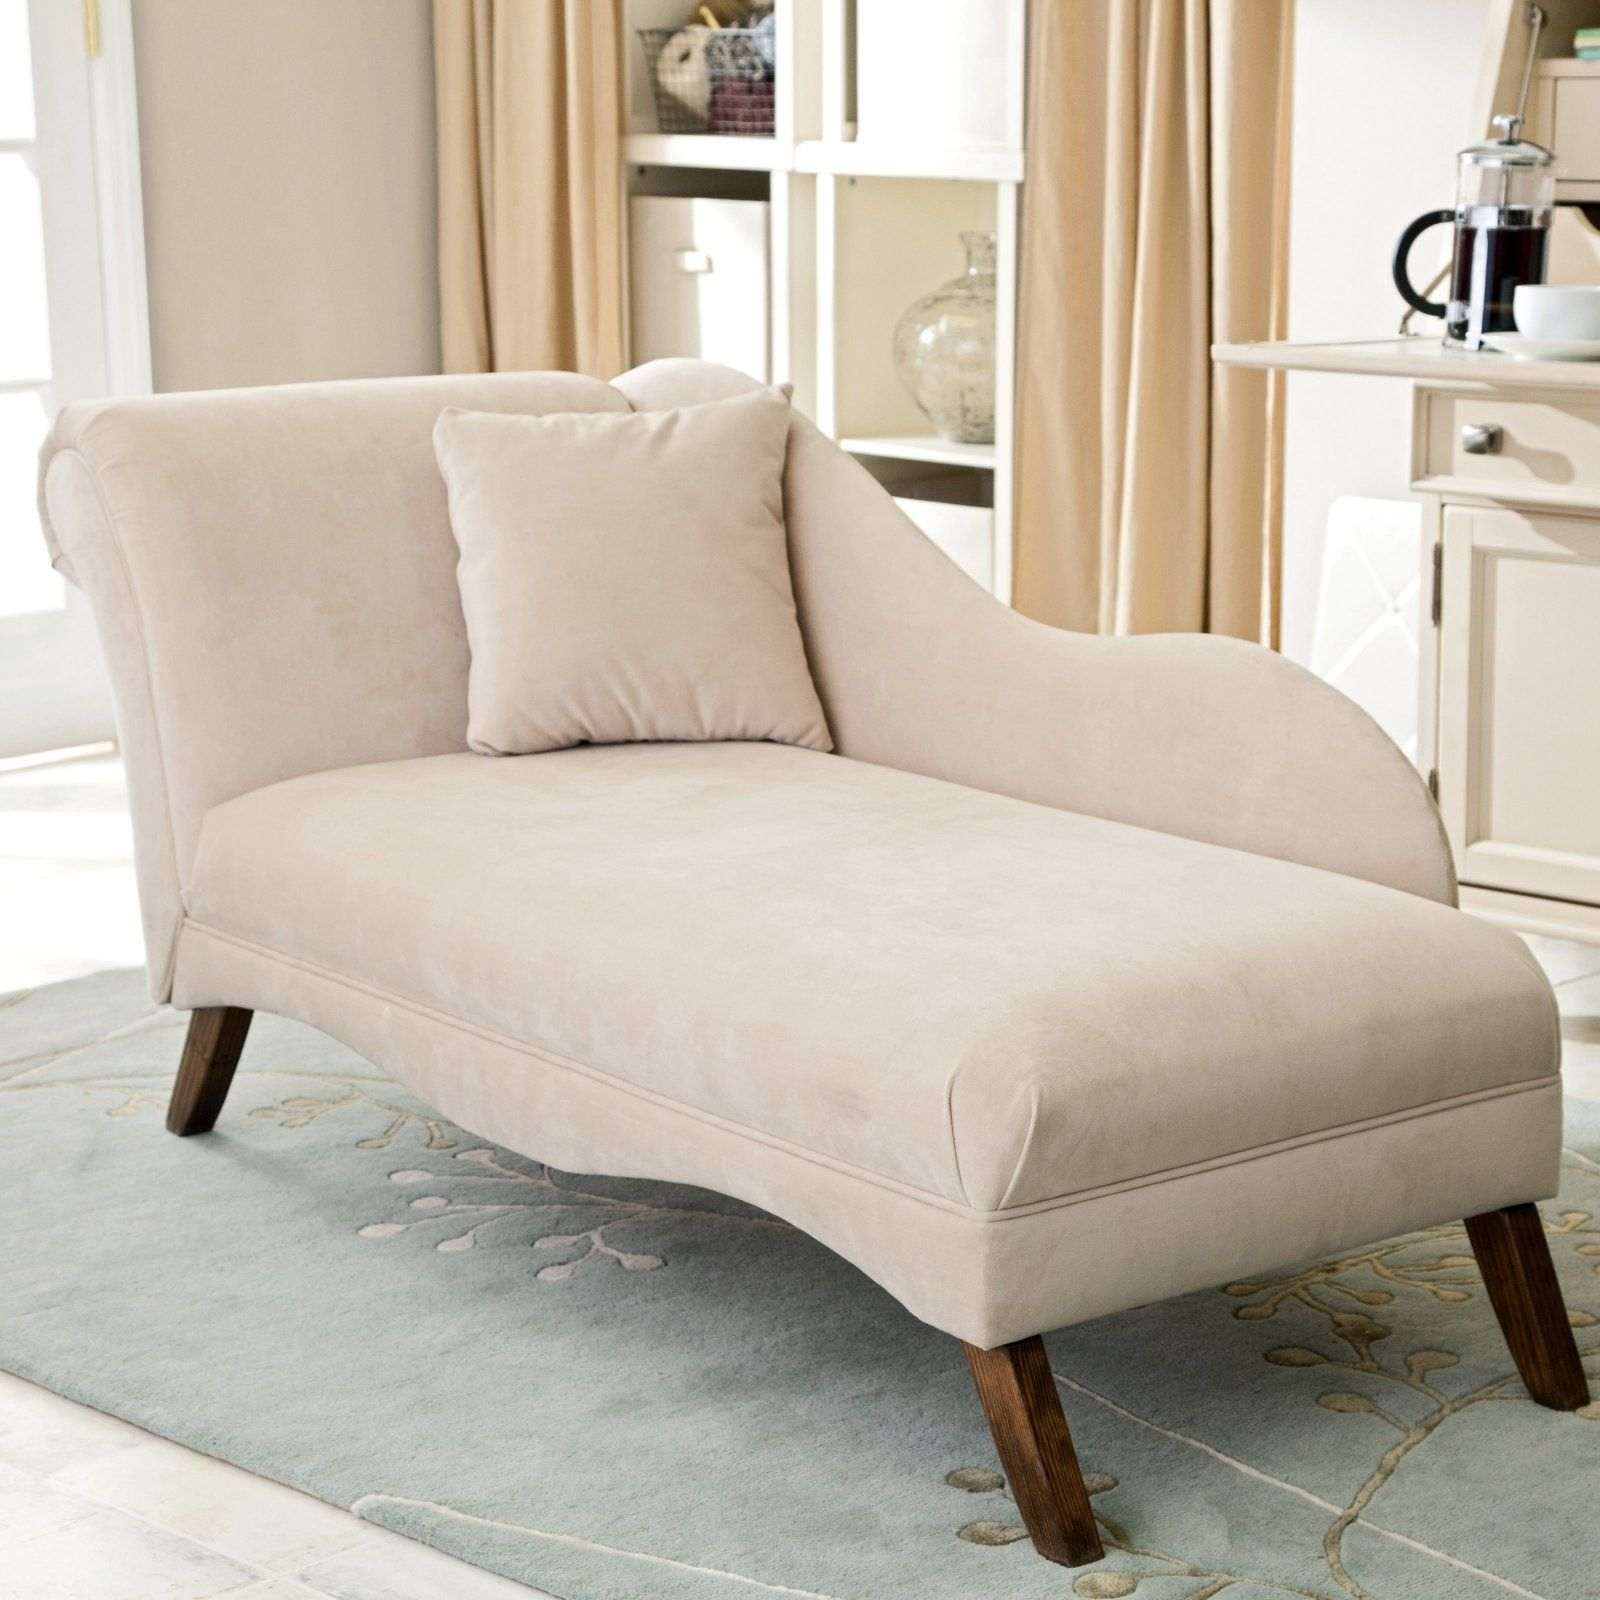 Comfy Chair Big Comfy Chair Home Decor Furniture